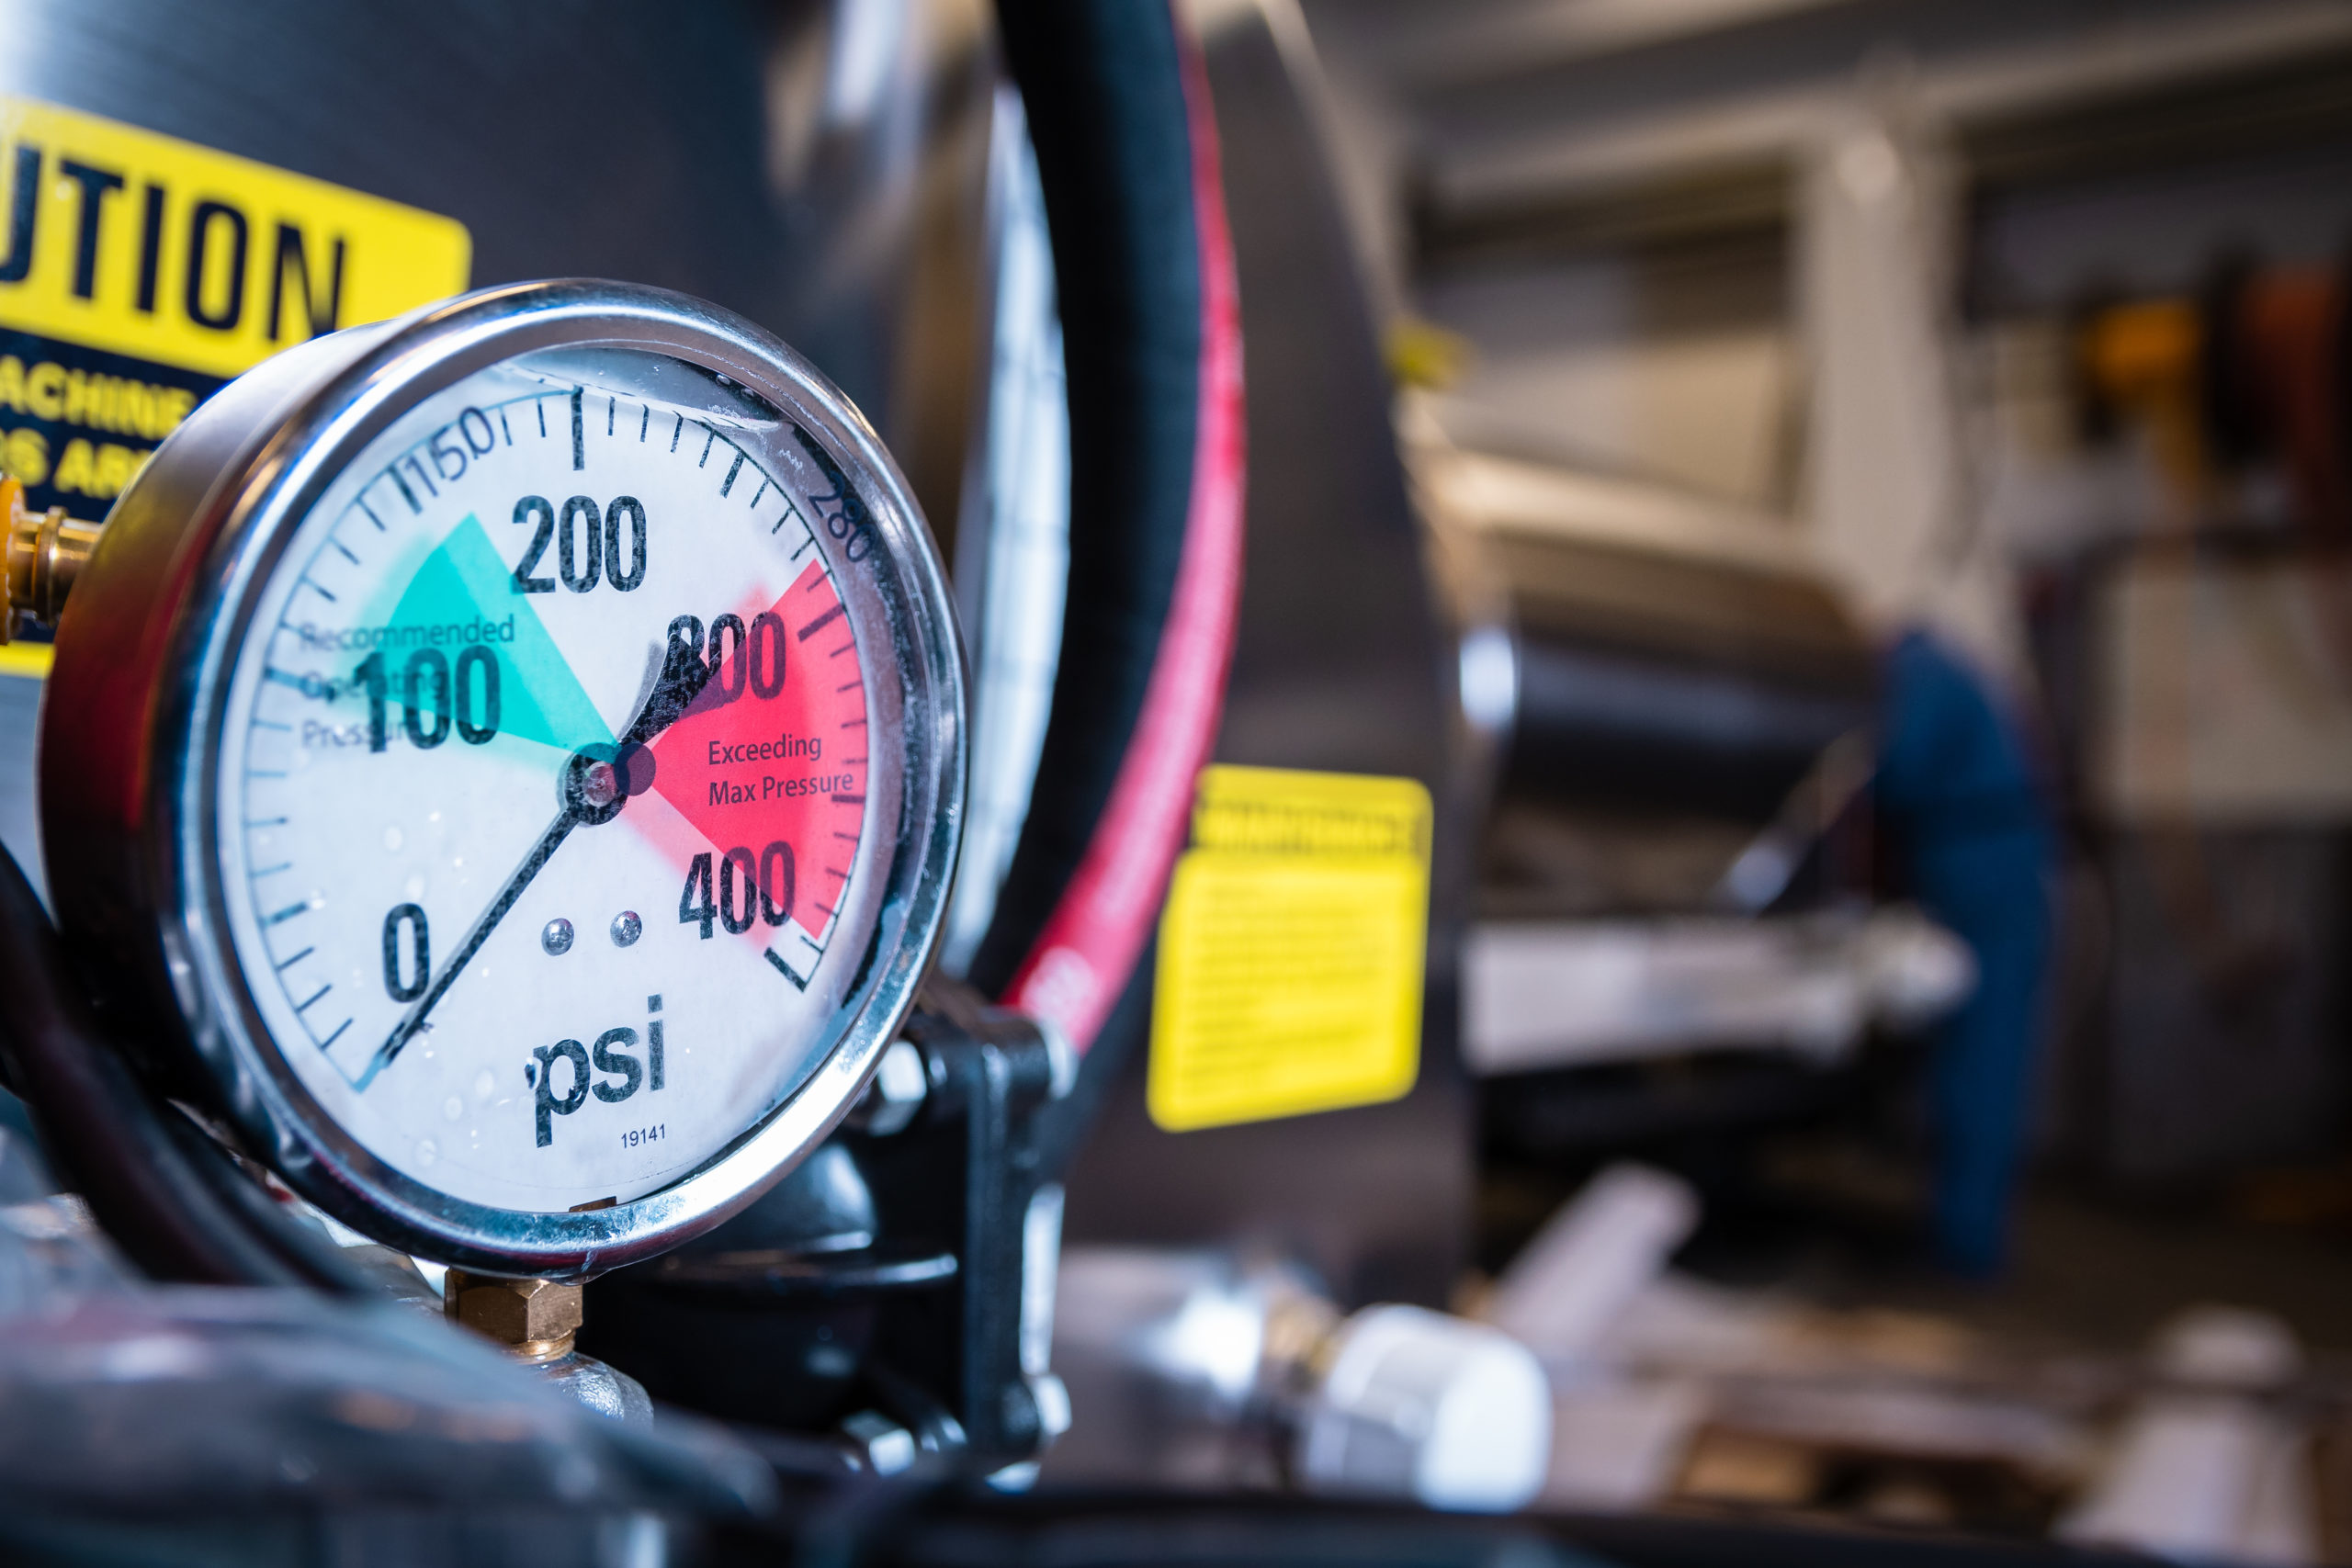 Photo of Turbo-mist agricultural sprayer pressure gauge.